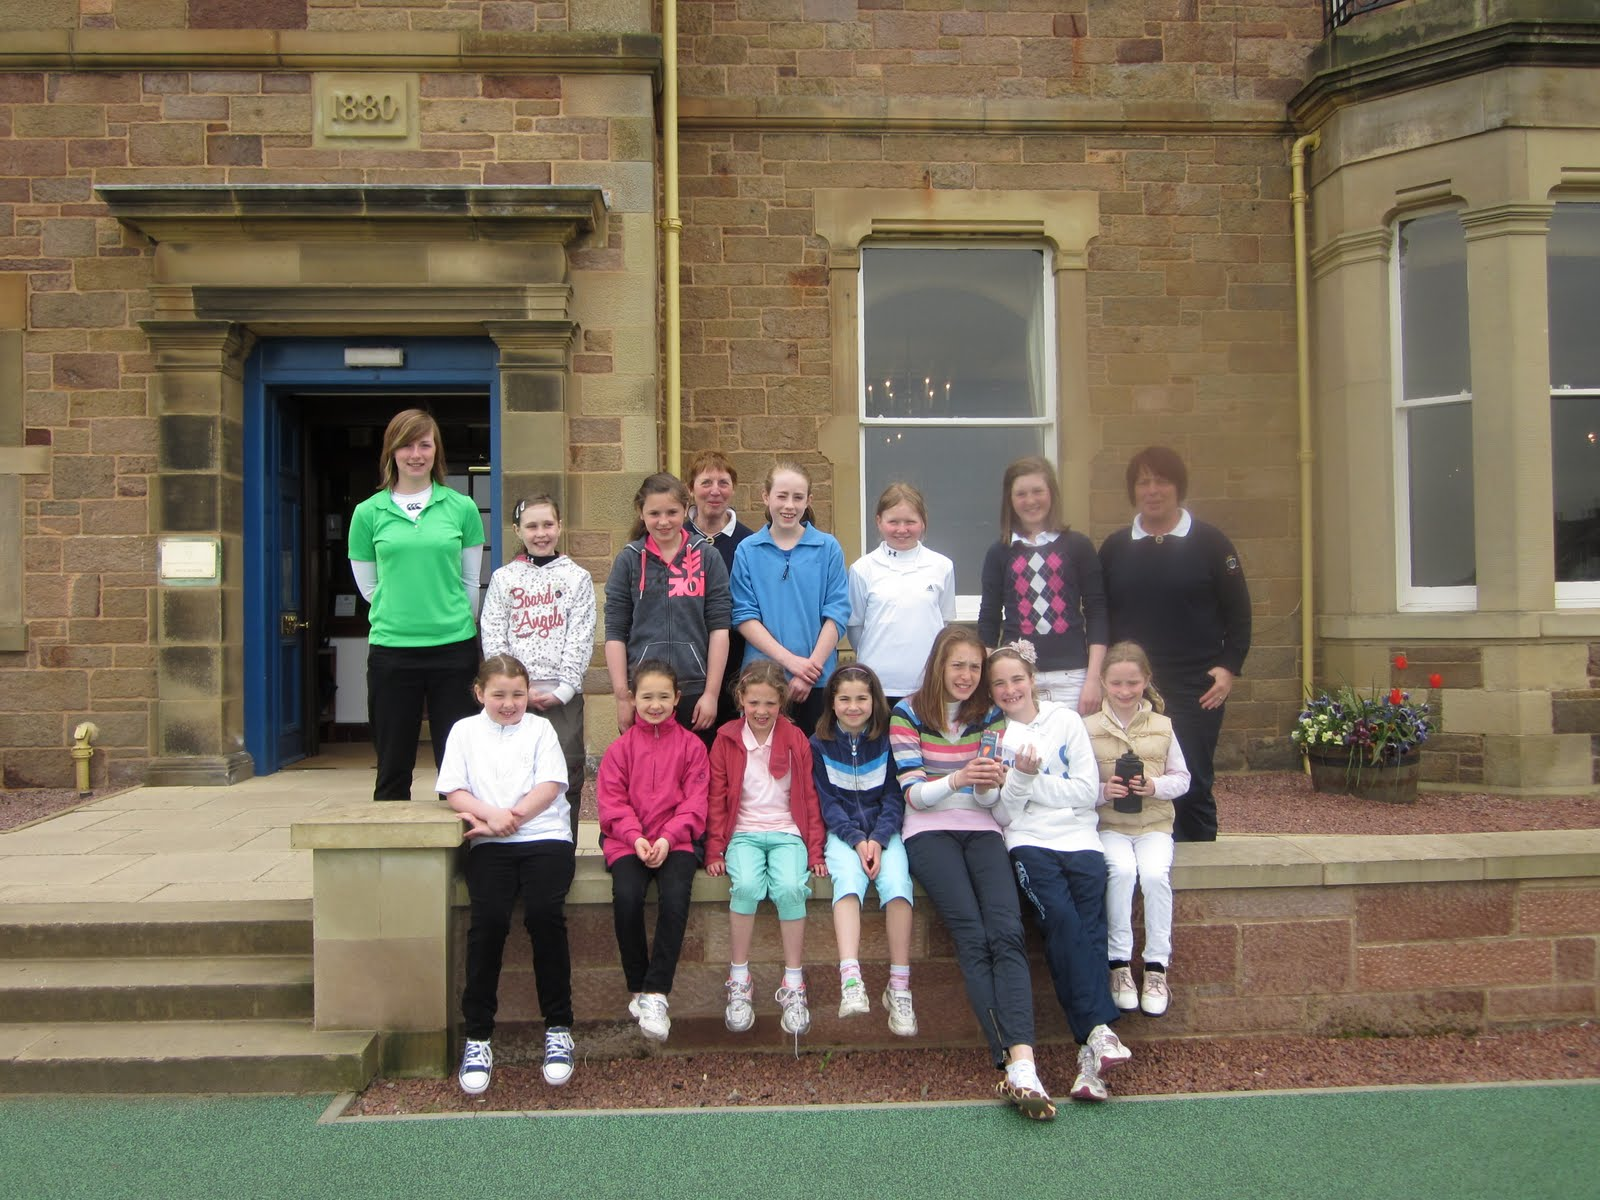 north berwick women The famous west course at north berwick is one of the earliest courses laid out  on  catriona matthew, former women's british open winner.